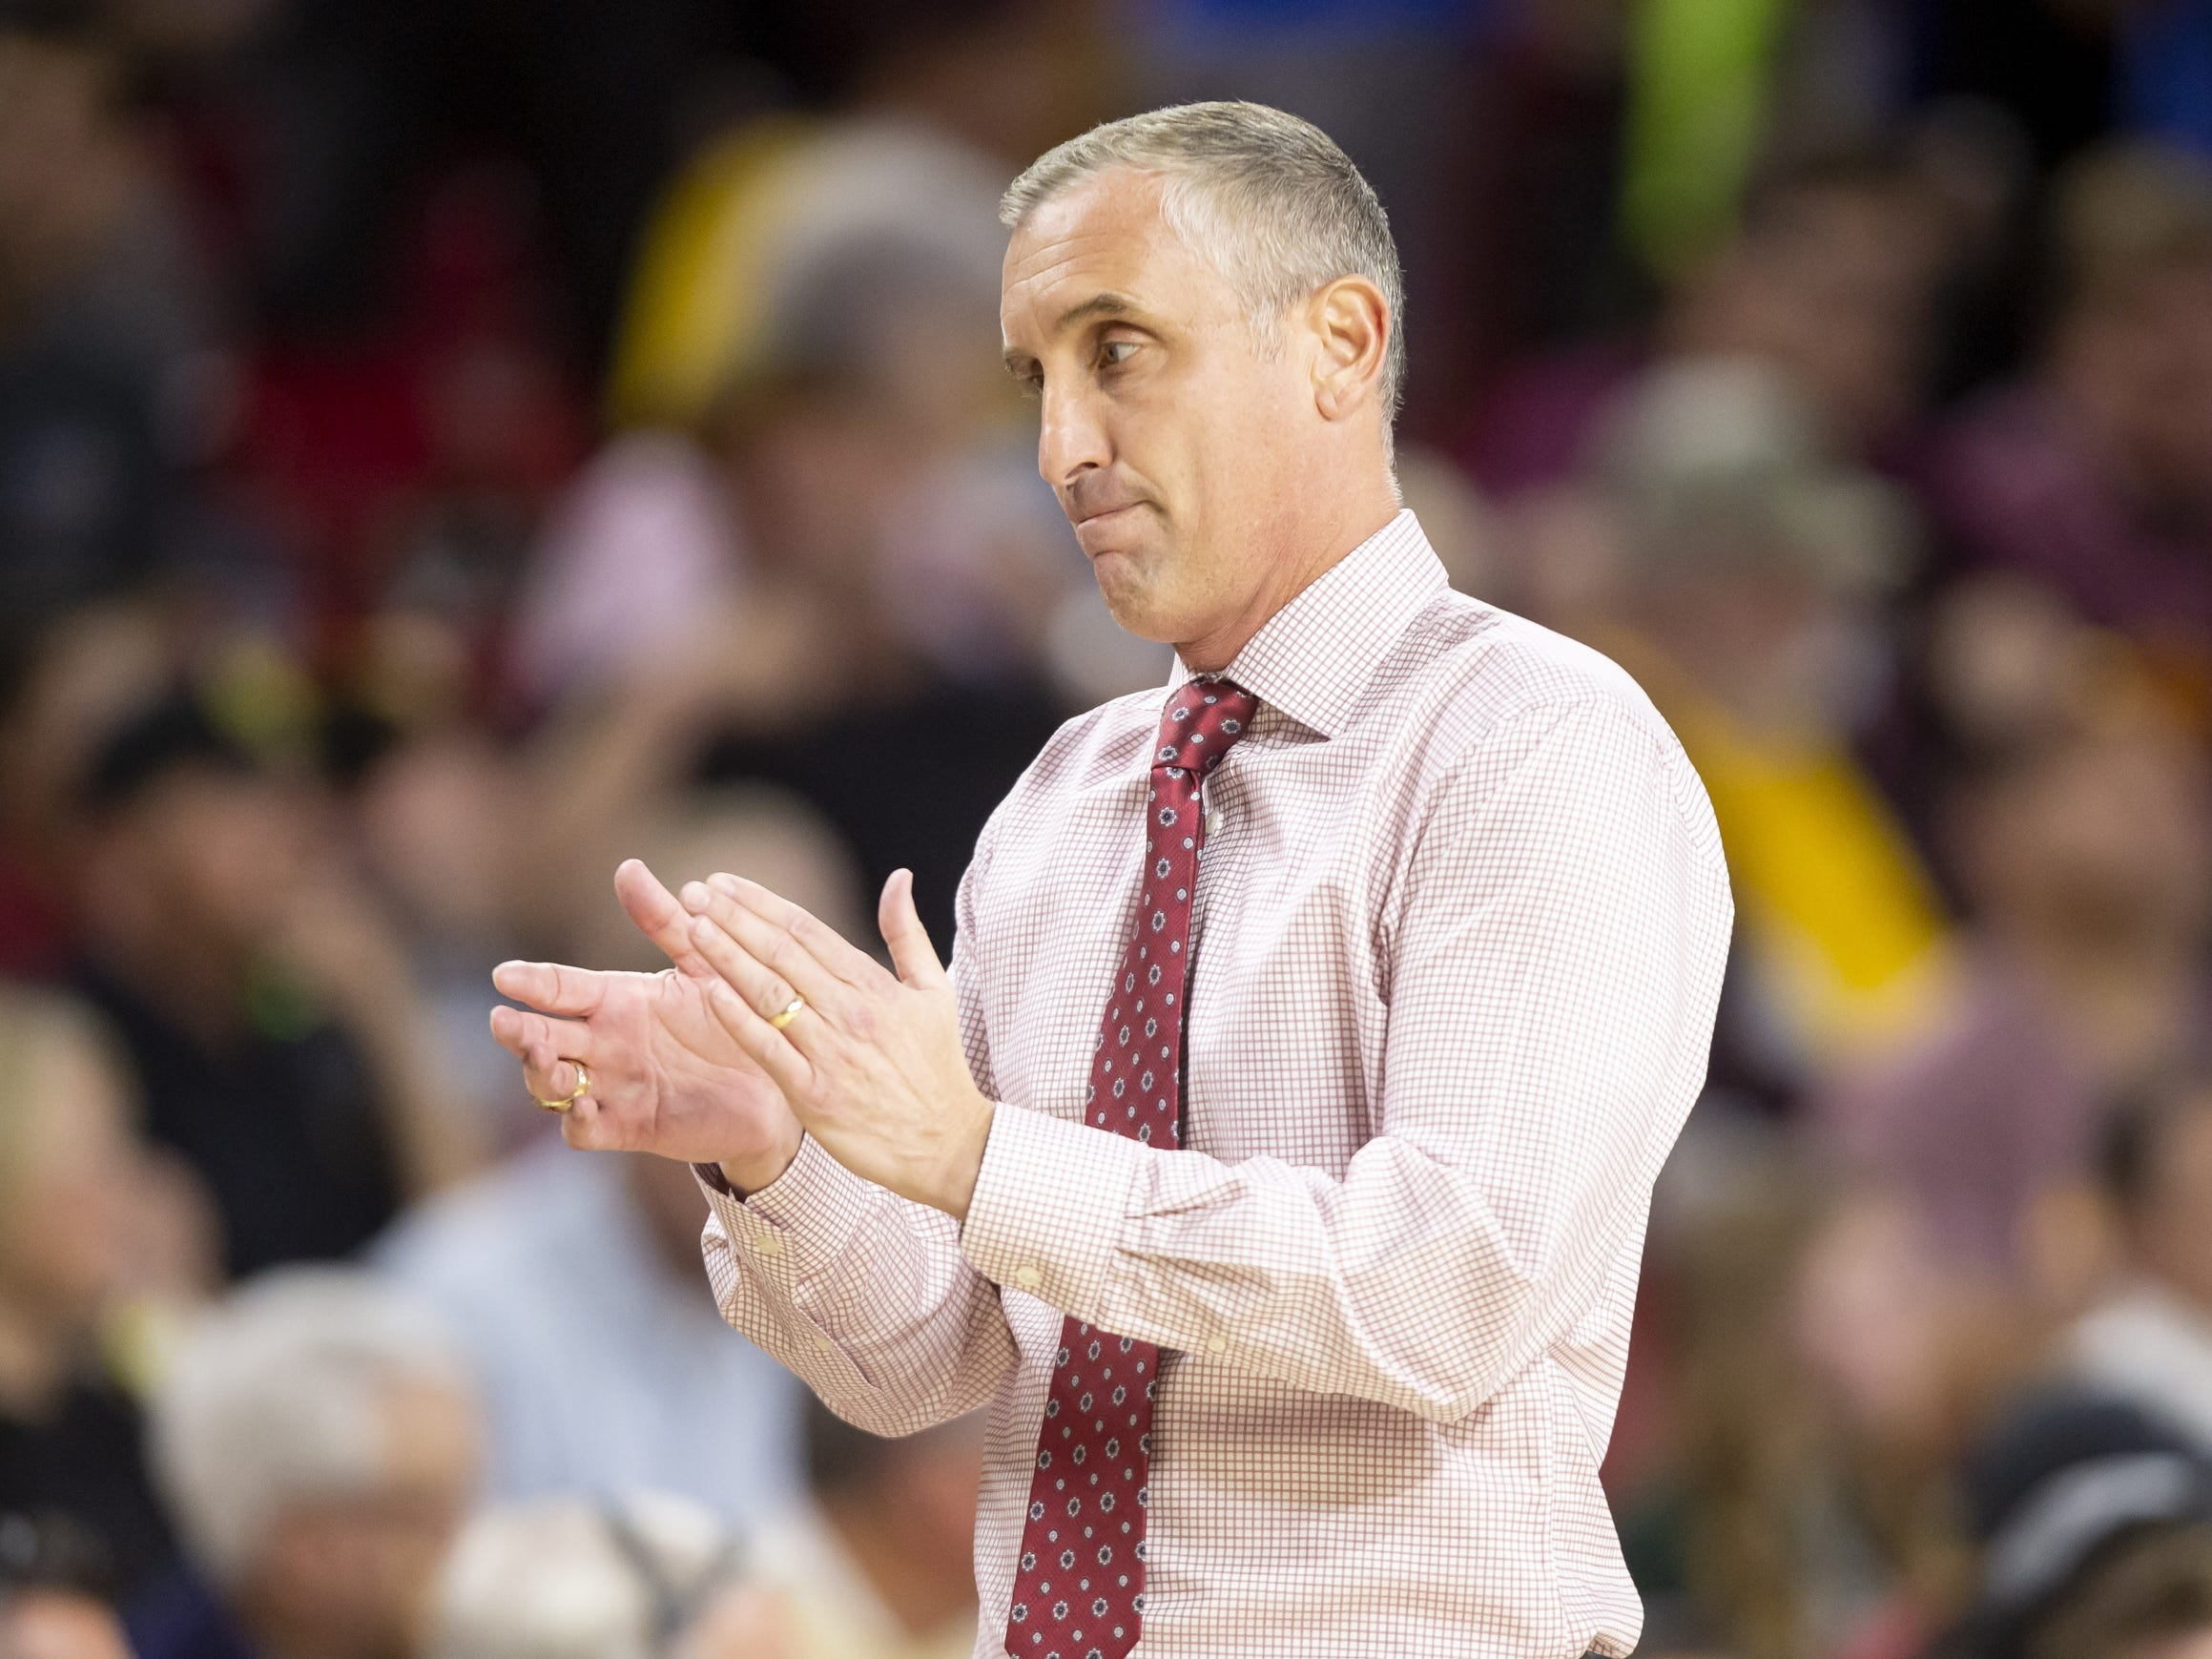 Head coach Bobby Hurley of the Arizona State Sun Devils applauds during the game against the Cal State Fullerton Titans at Wells Fargo Arena on Tuesday, November 6, 2018 in Tempe, Arizona.